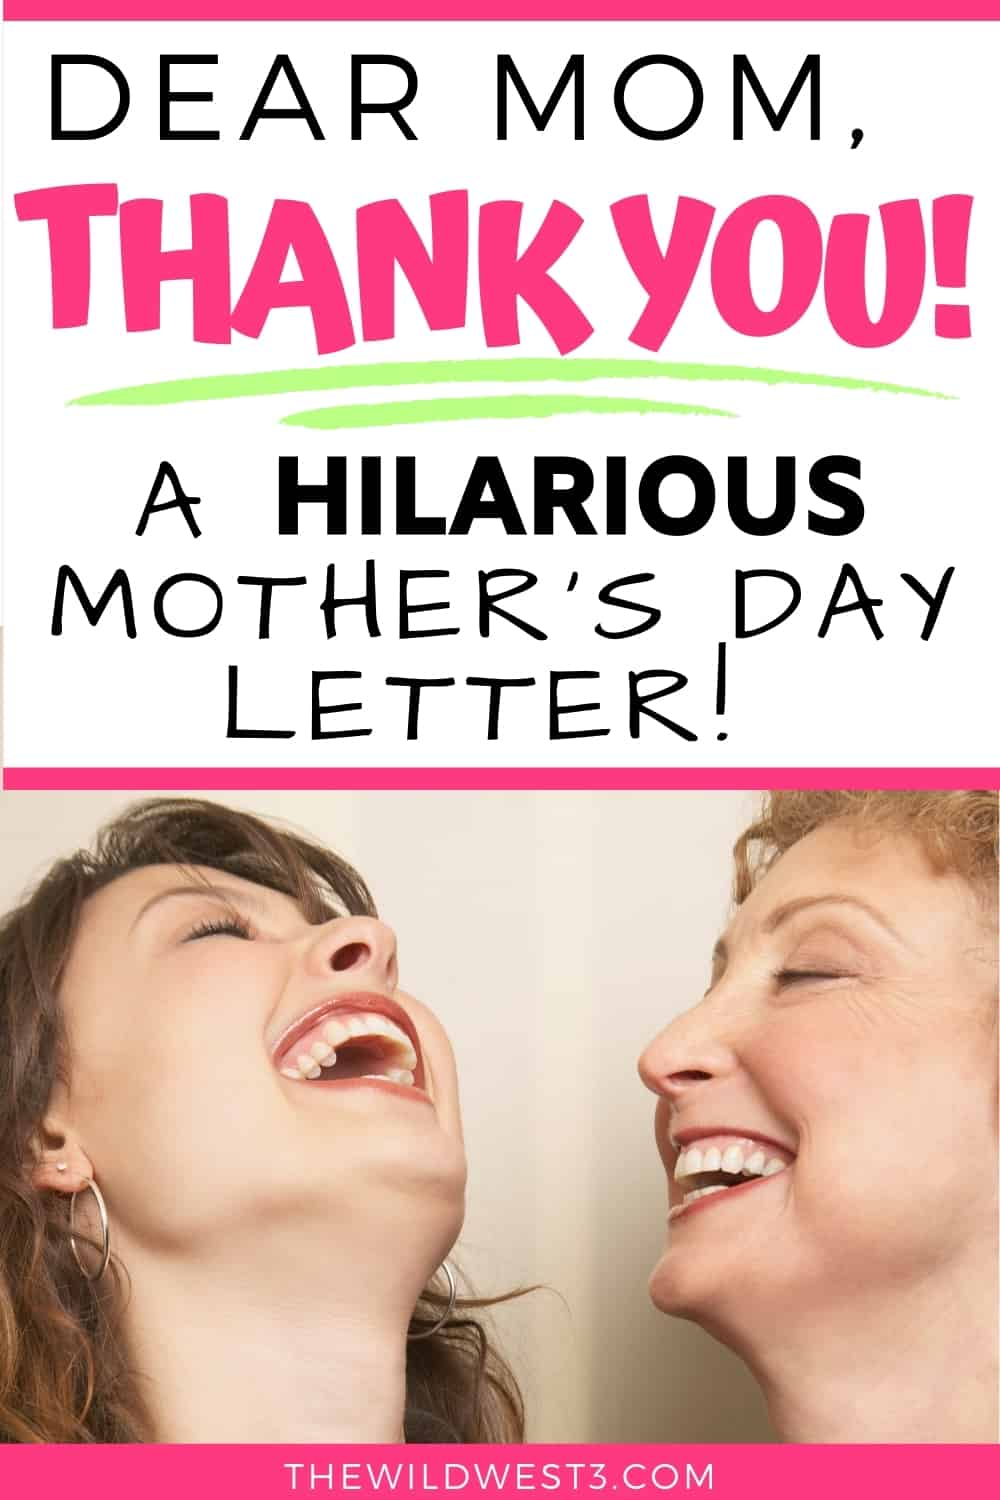 Dear Mom Thank You - a Hilariously funny Mother's Day message printed over a mom and daughter's picture